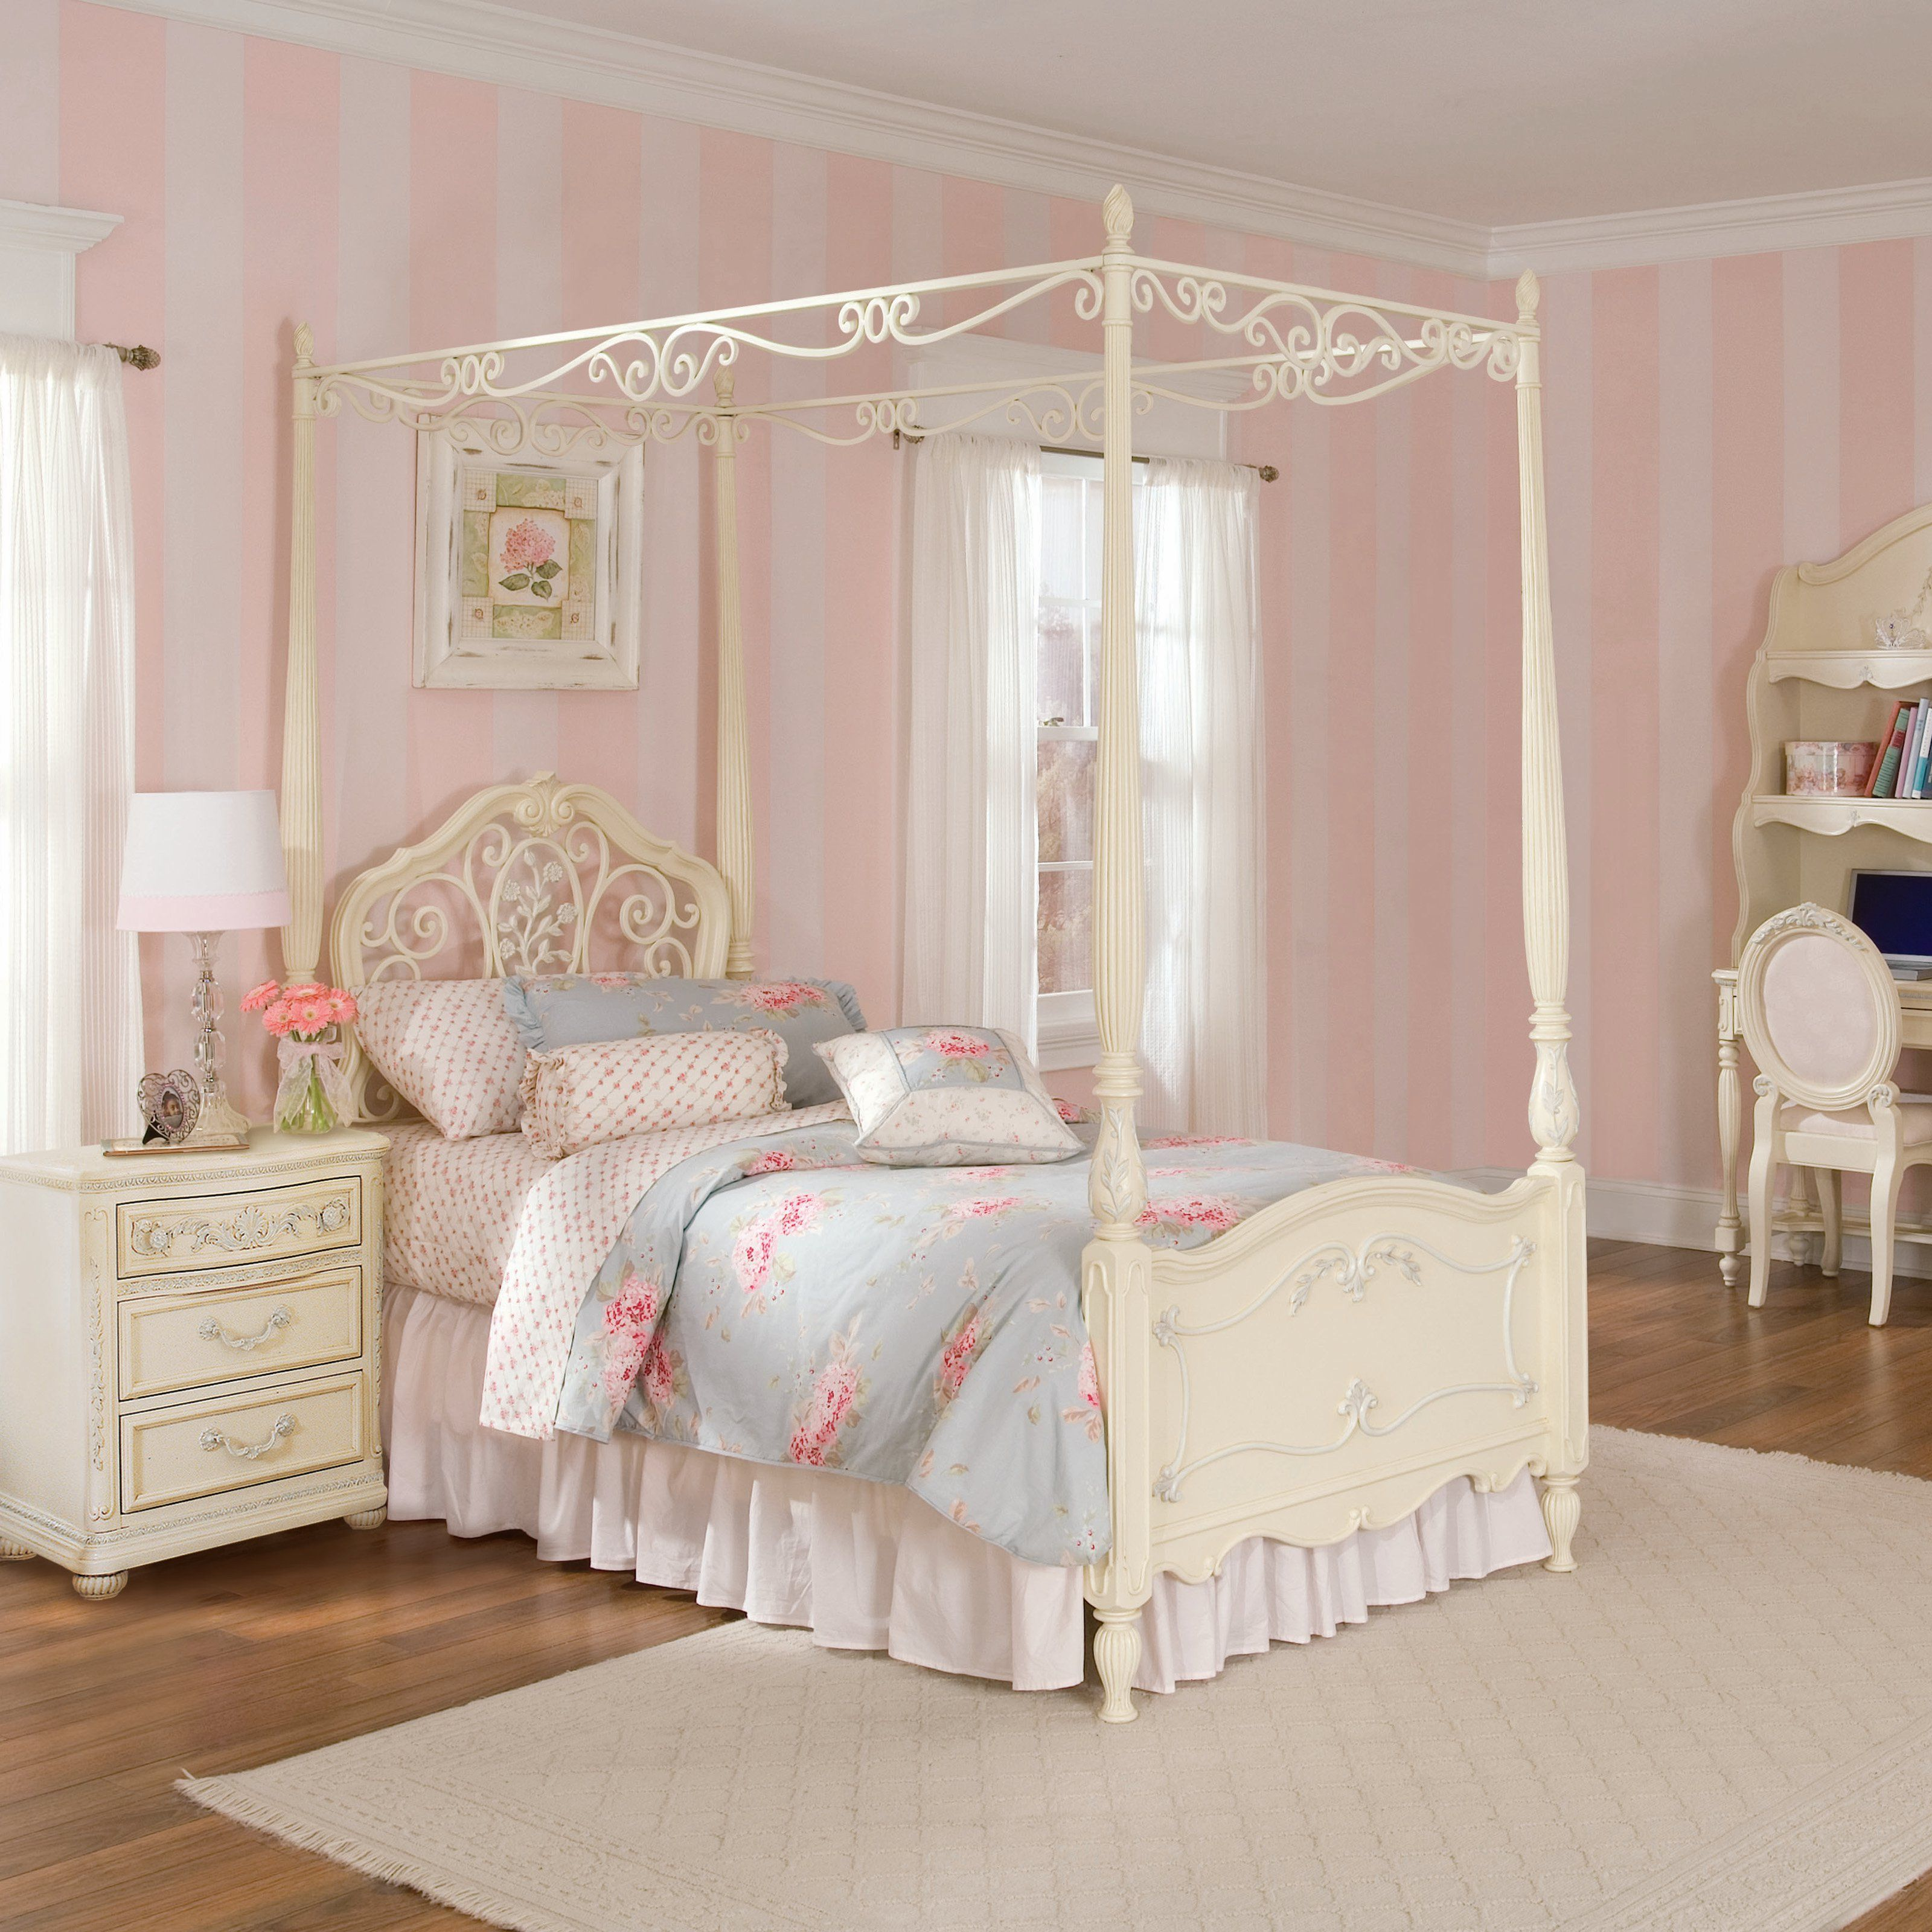 Adorable Kids Canopy Beds With Thick Blanket And Pillow White Color